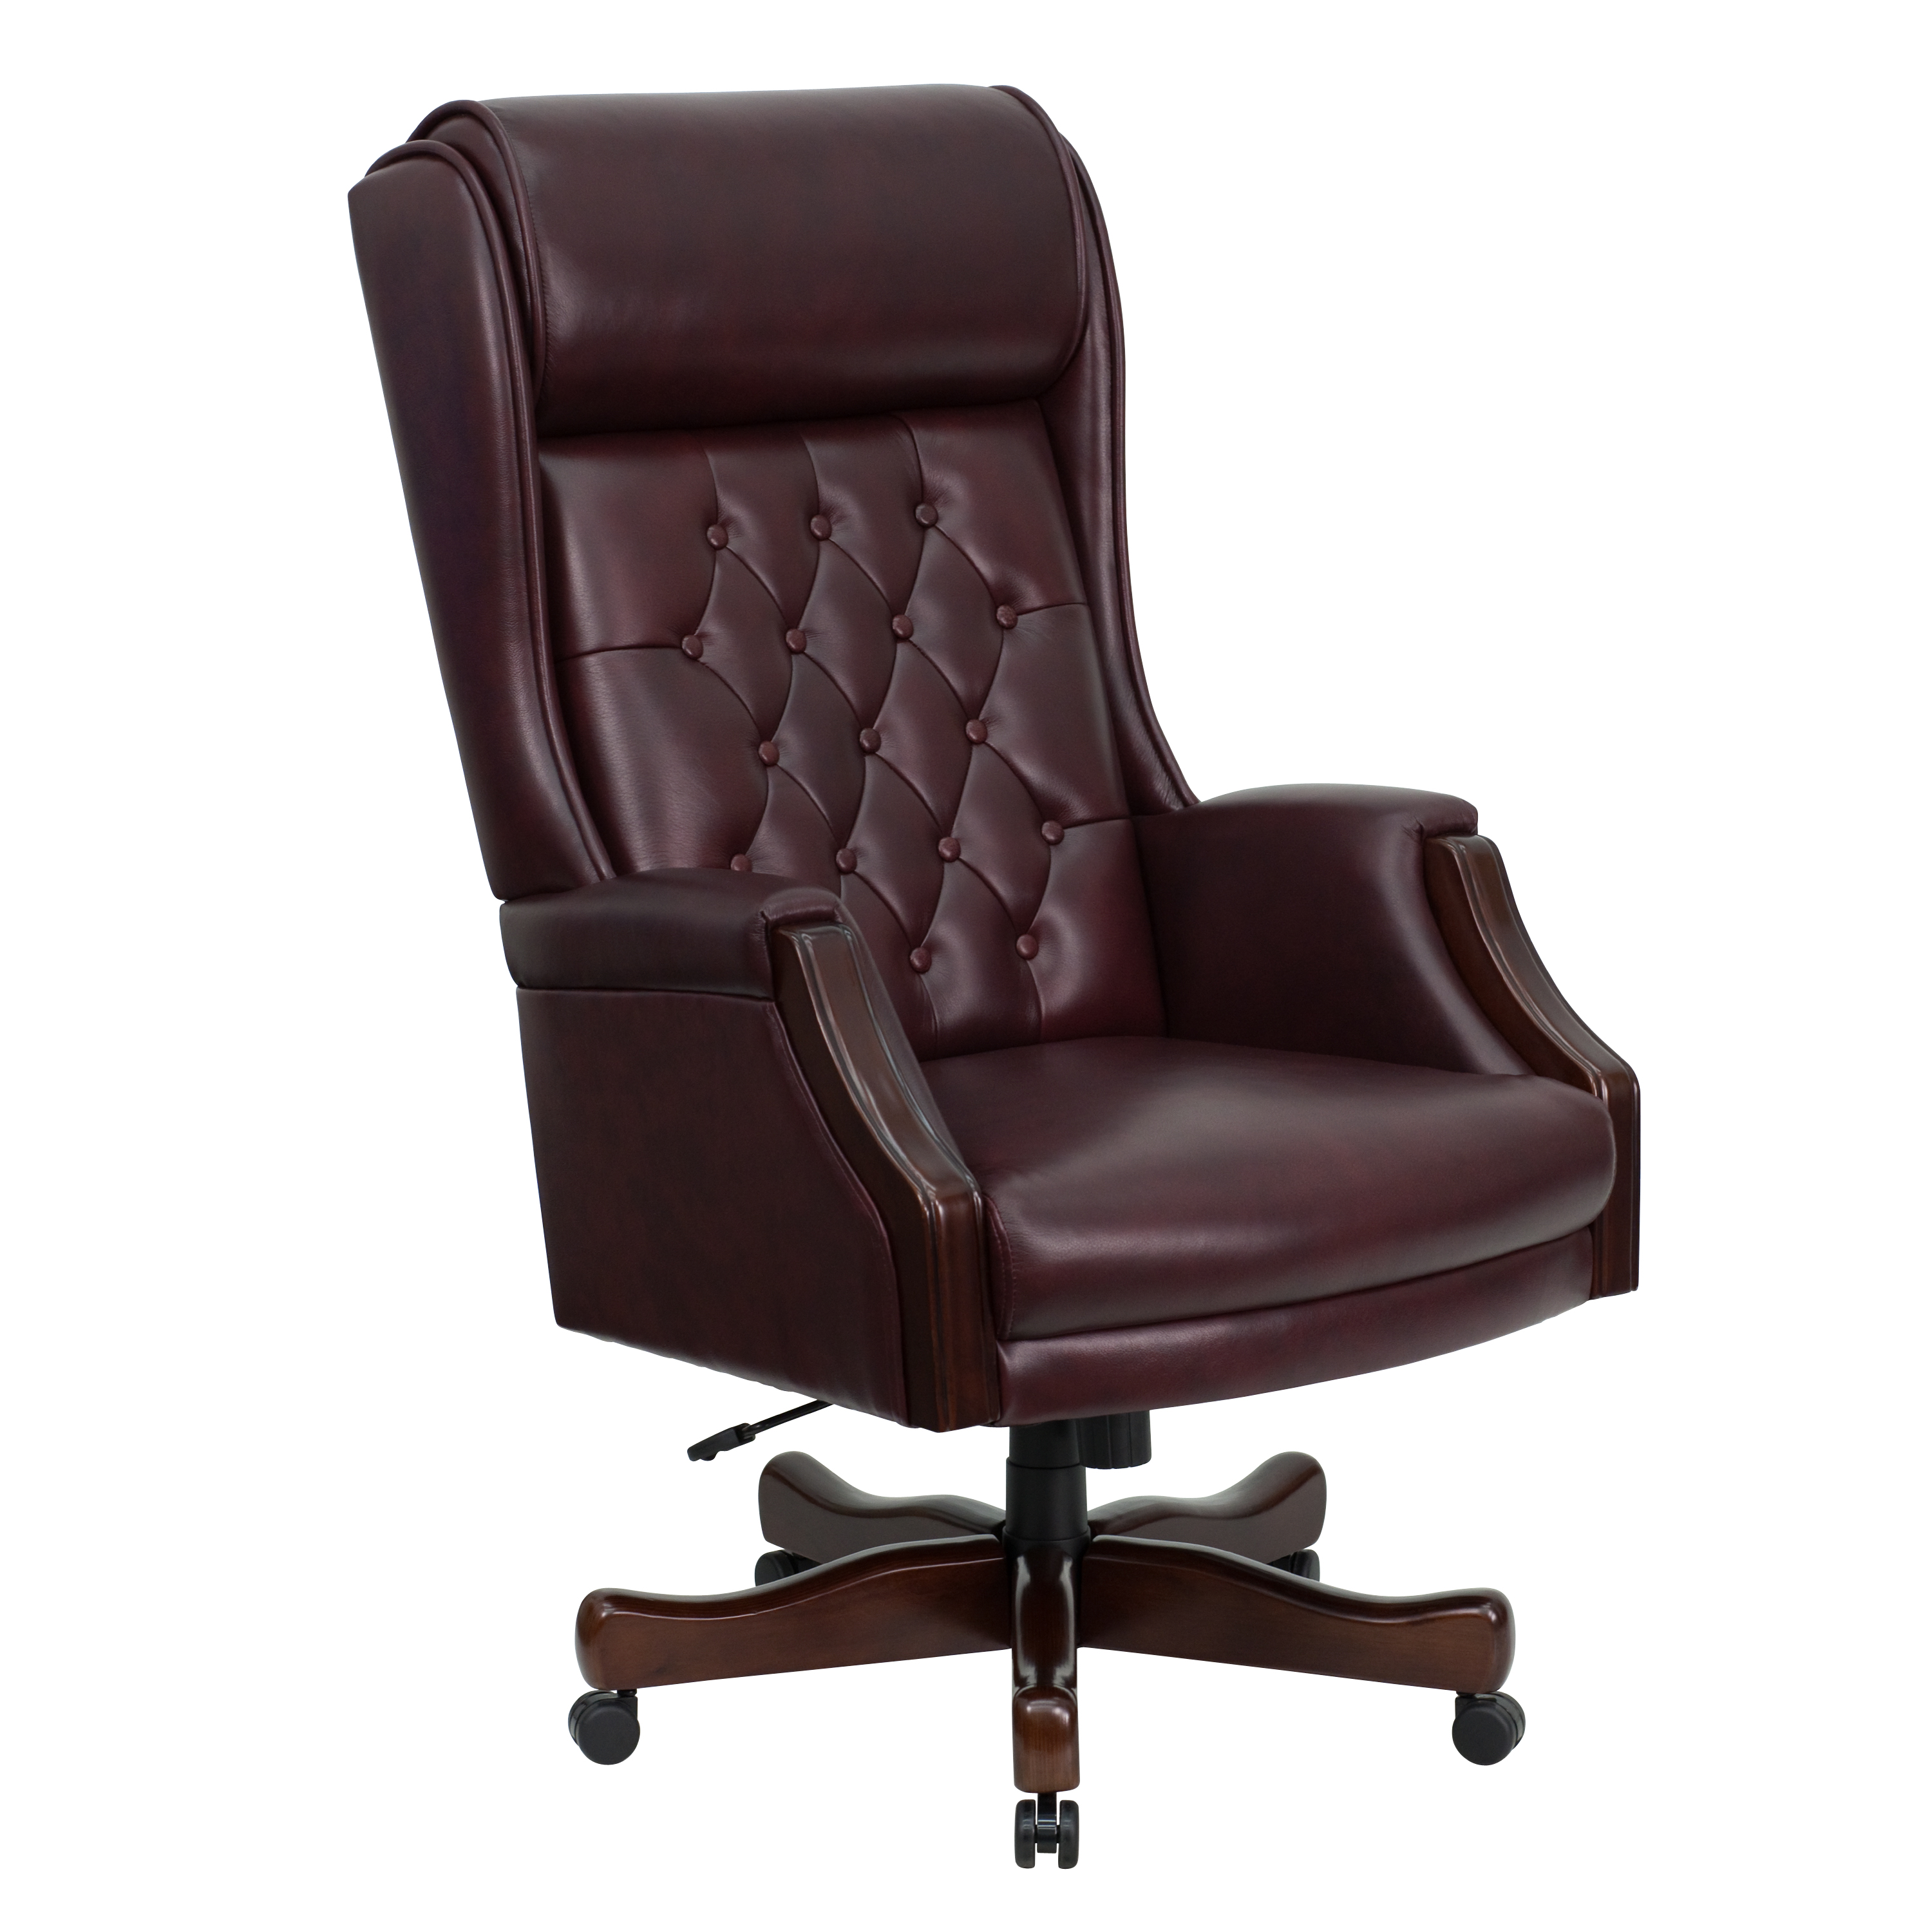 Outstanding High Back Traditional Tufted Leather Executive Swivel Office Chair Caraccident5 Cool Chair Designs And Ideas Caraccident5Info